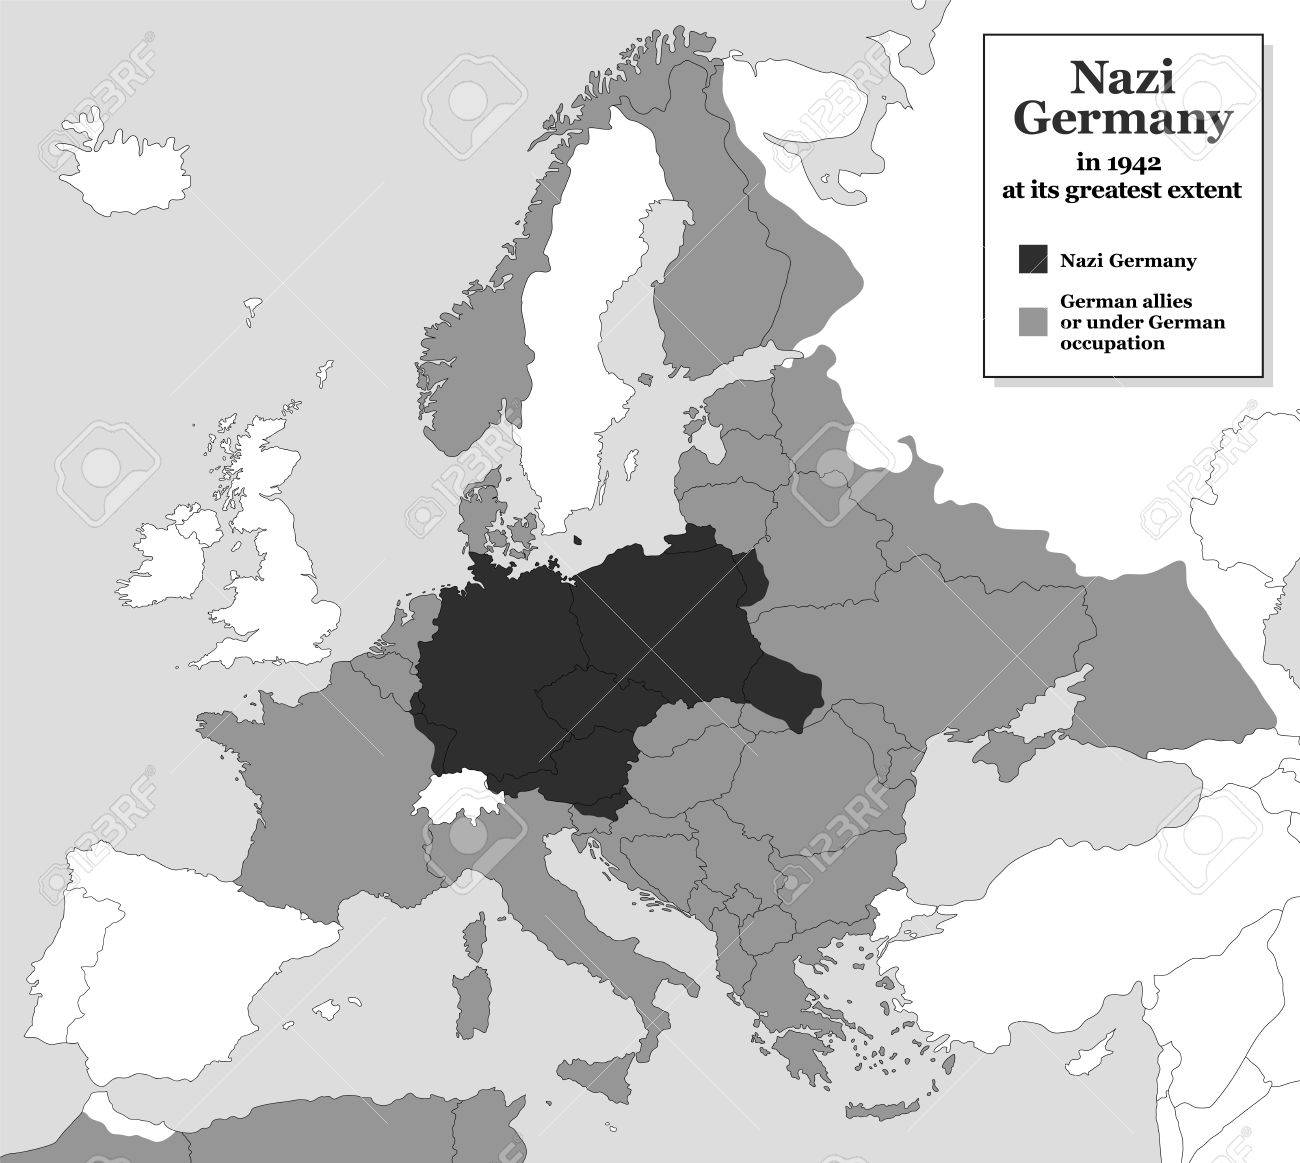 Nazi Map Of Europe.Nazi Germany At Its Greatest Extent During Wwii In 1942 With